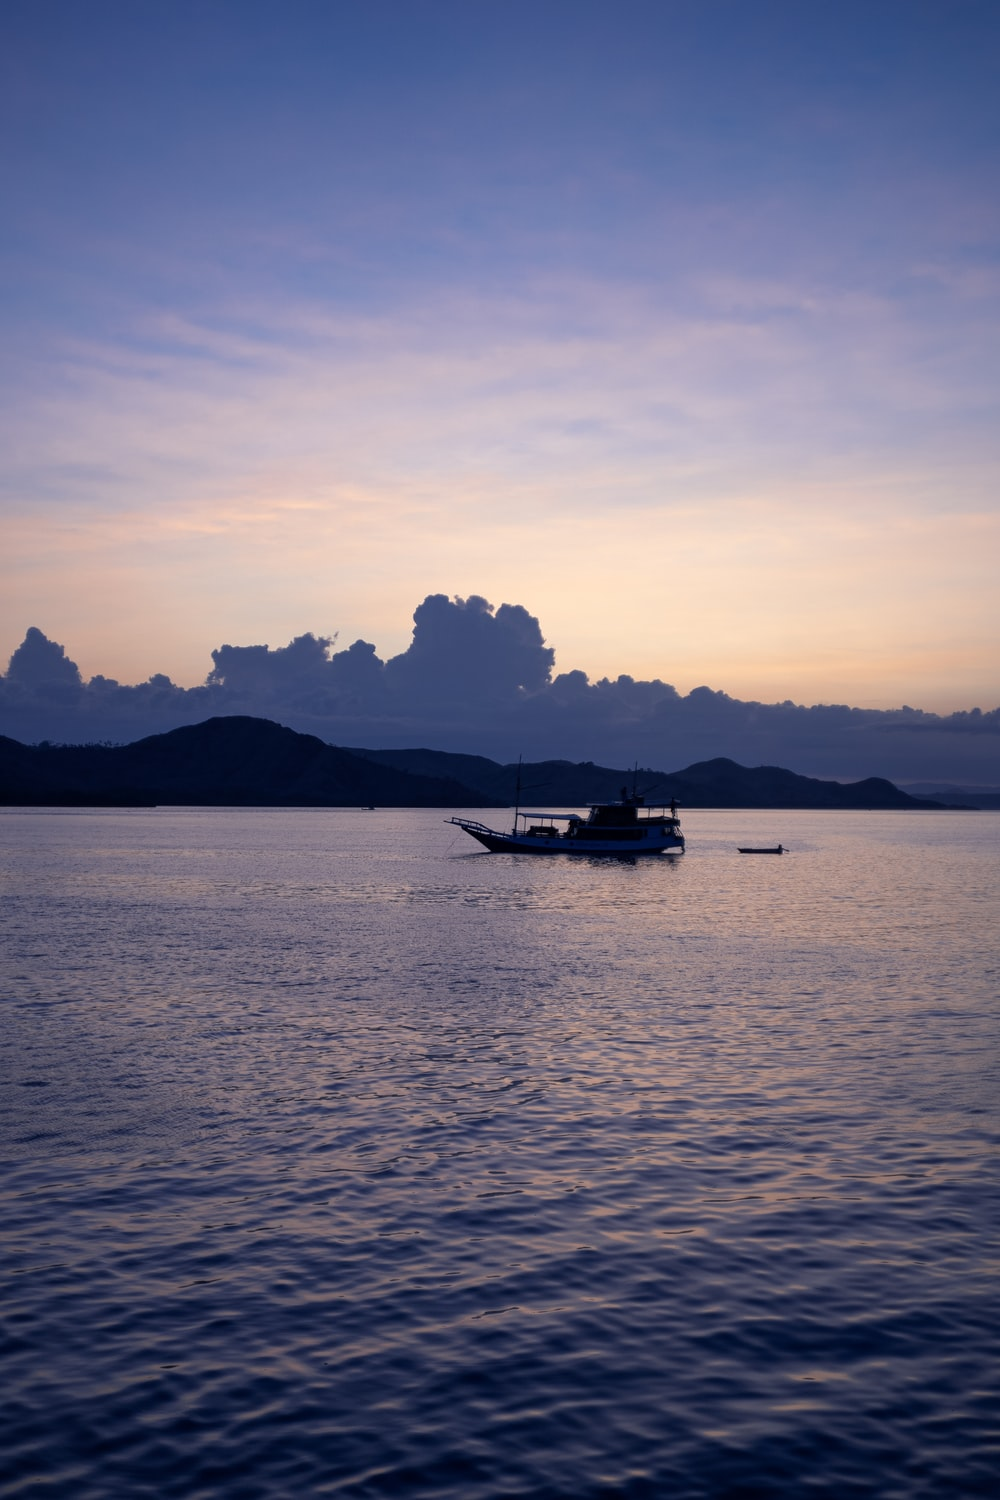 silhouette photography of a boat floating in the sea under a calm blue sky